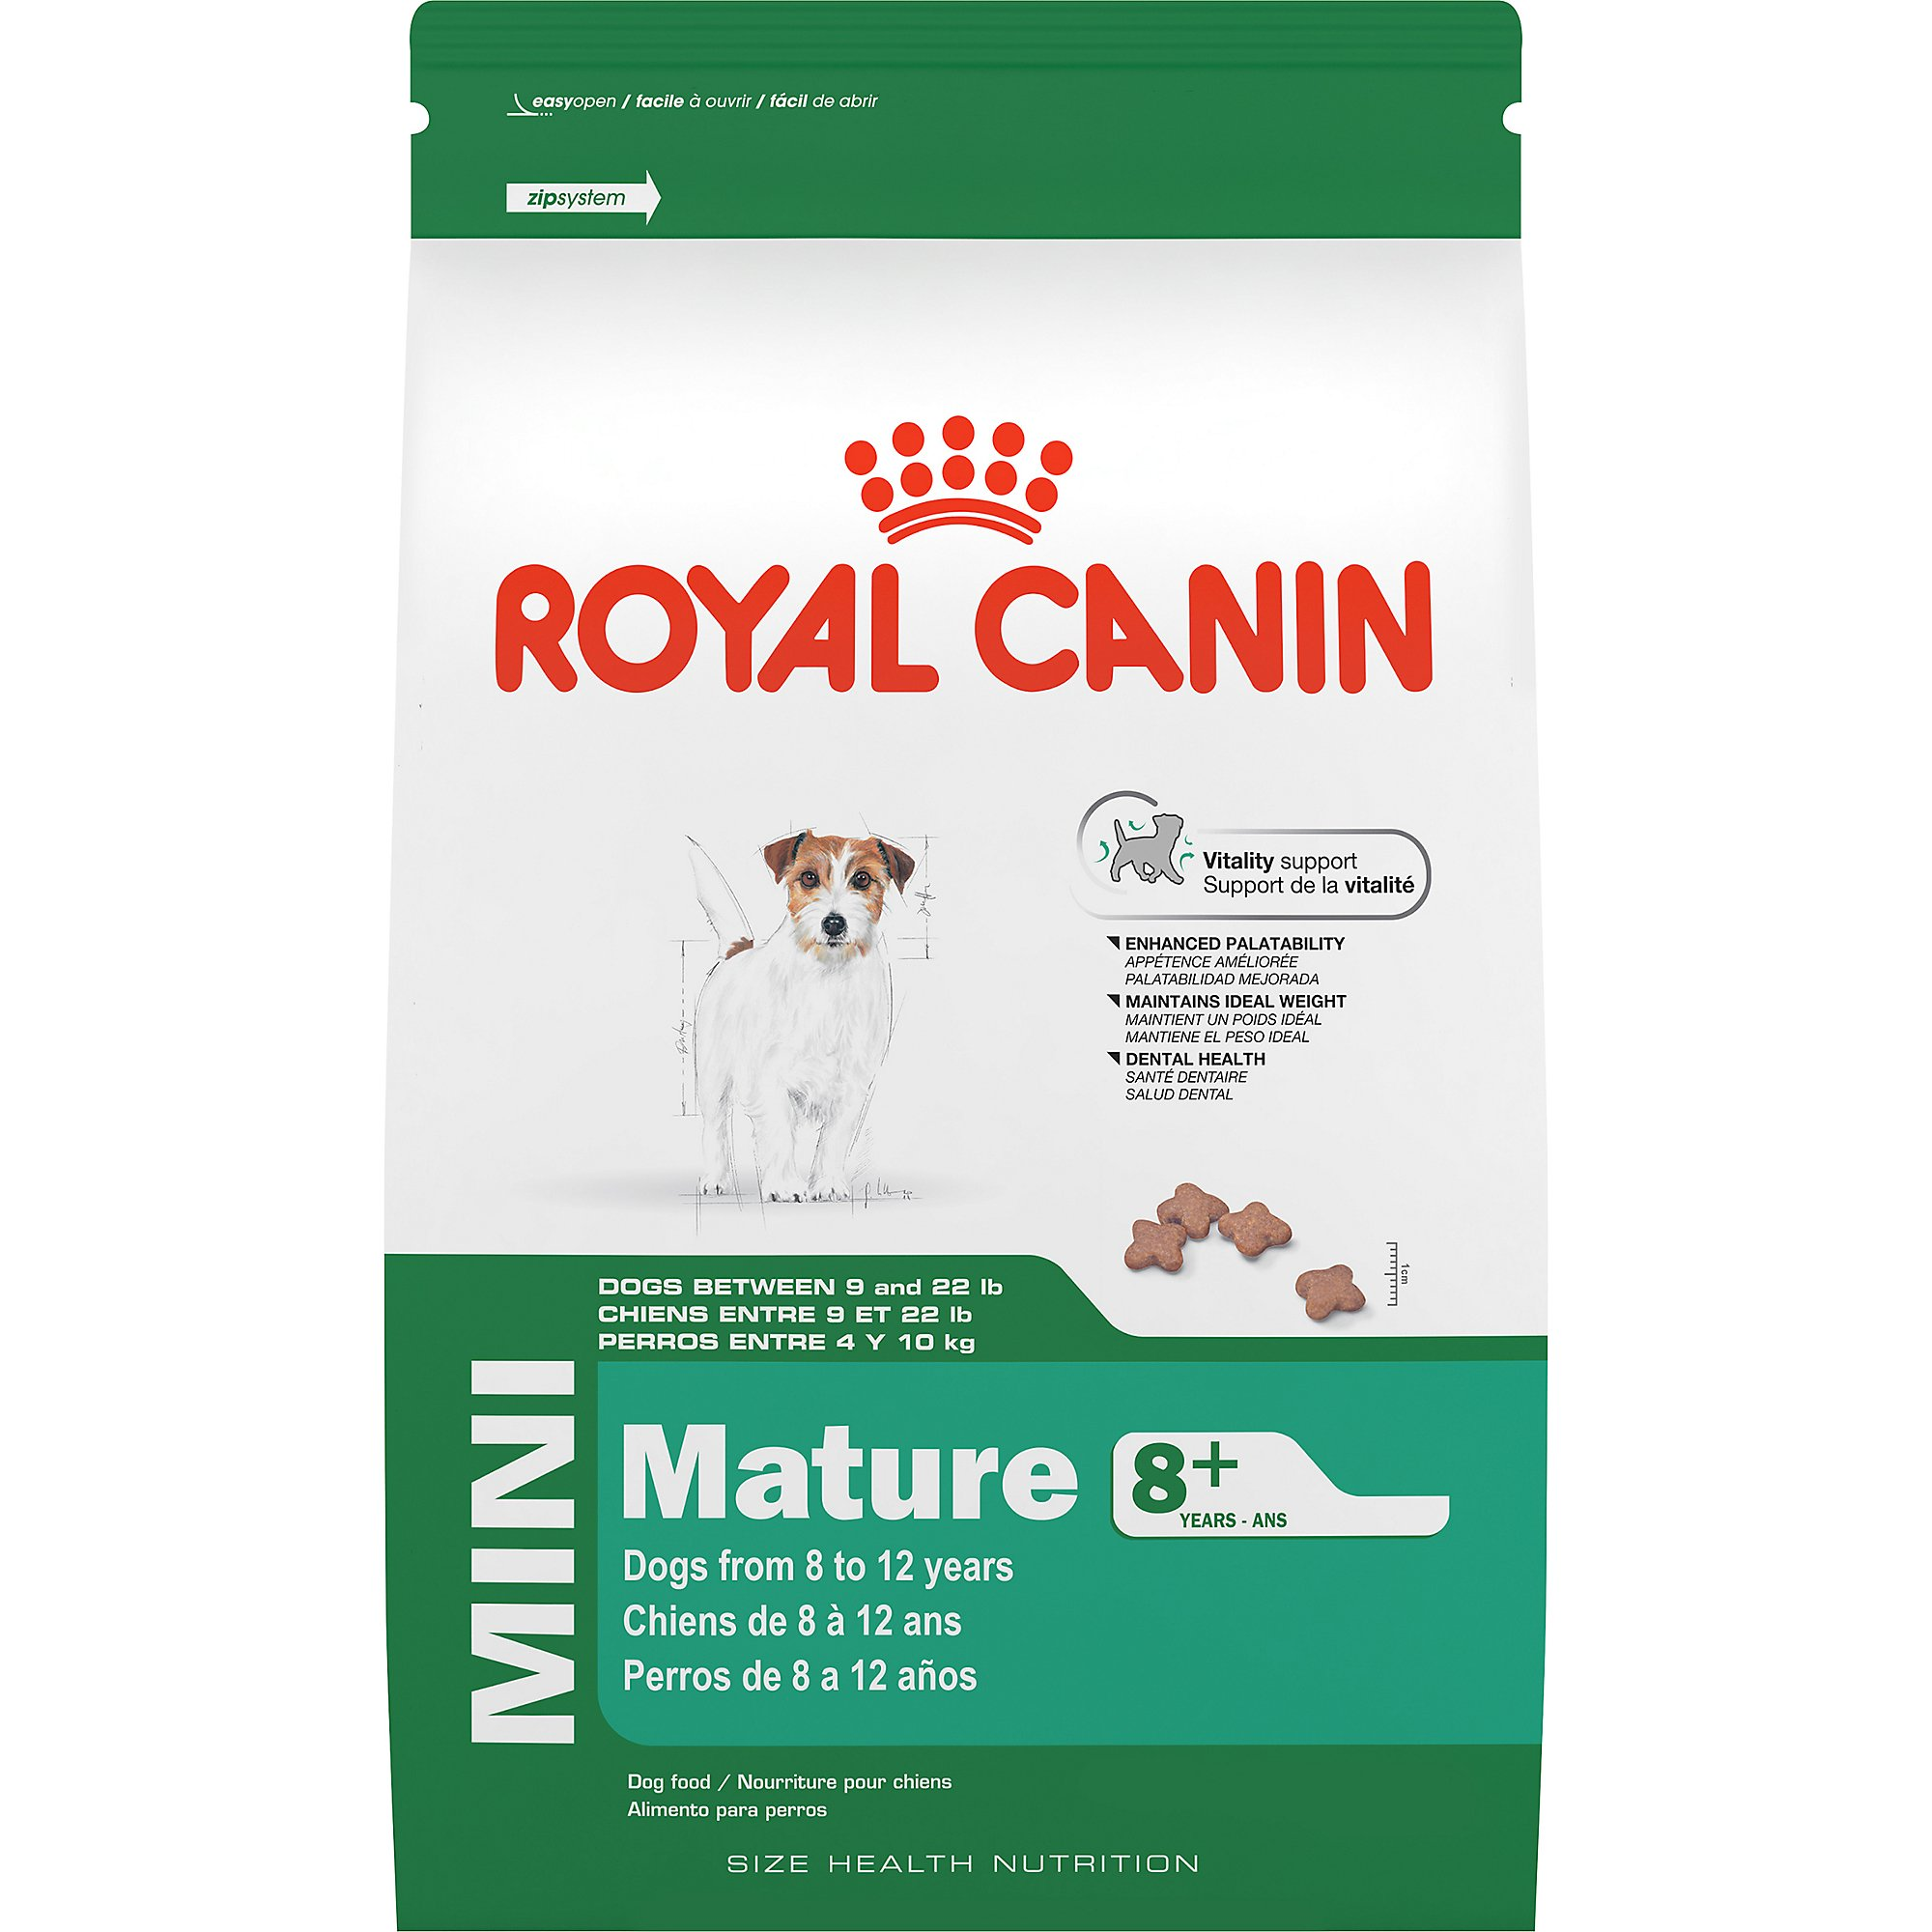 Royal Canin D D Cat Food